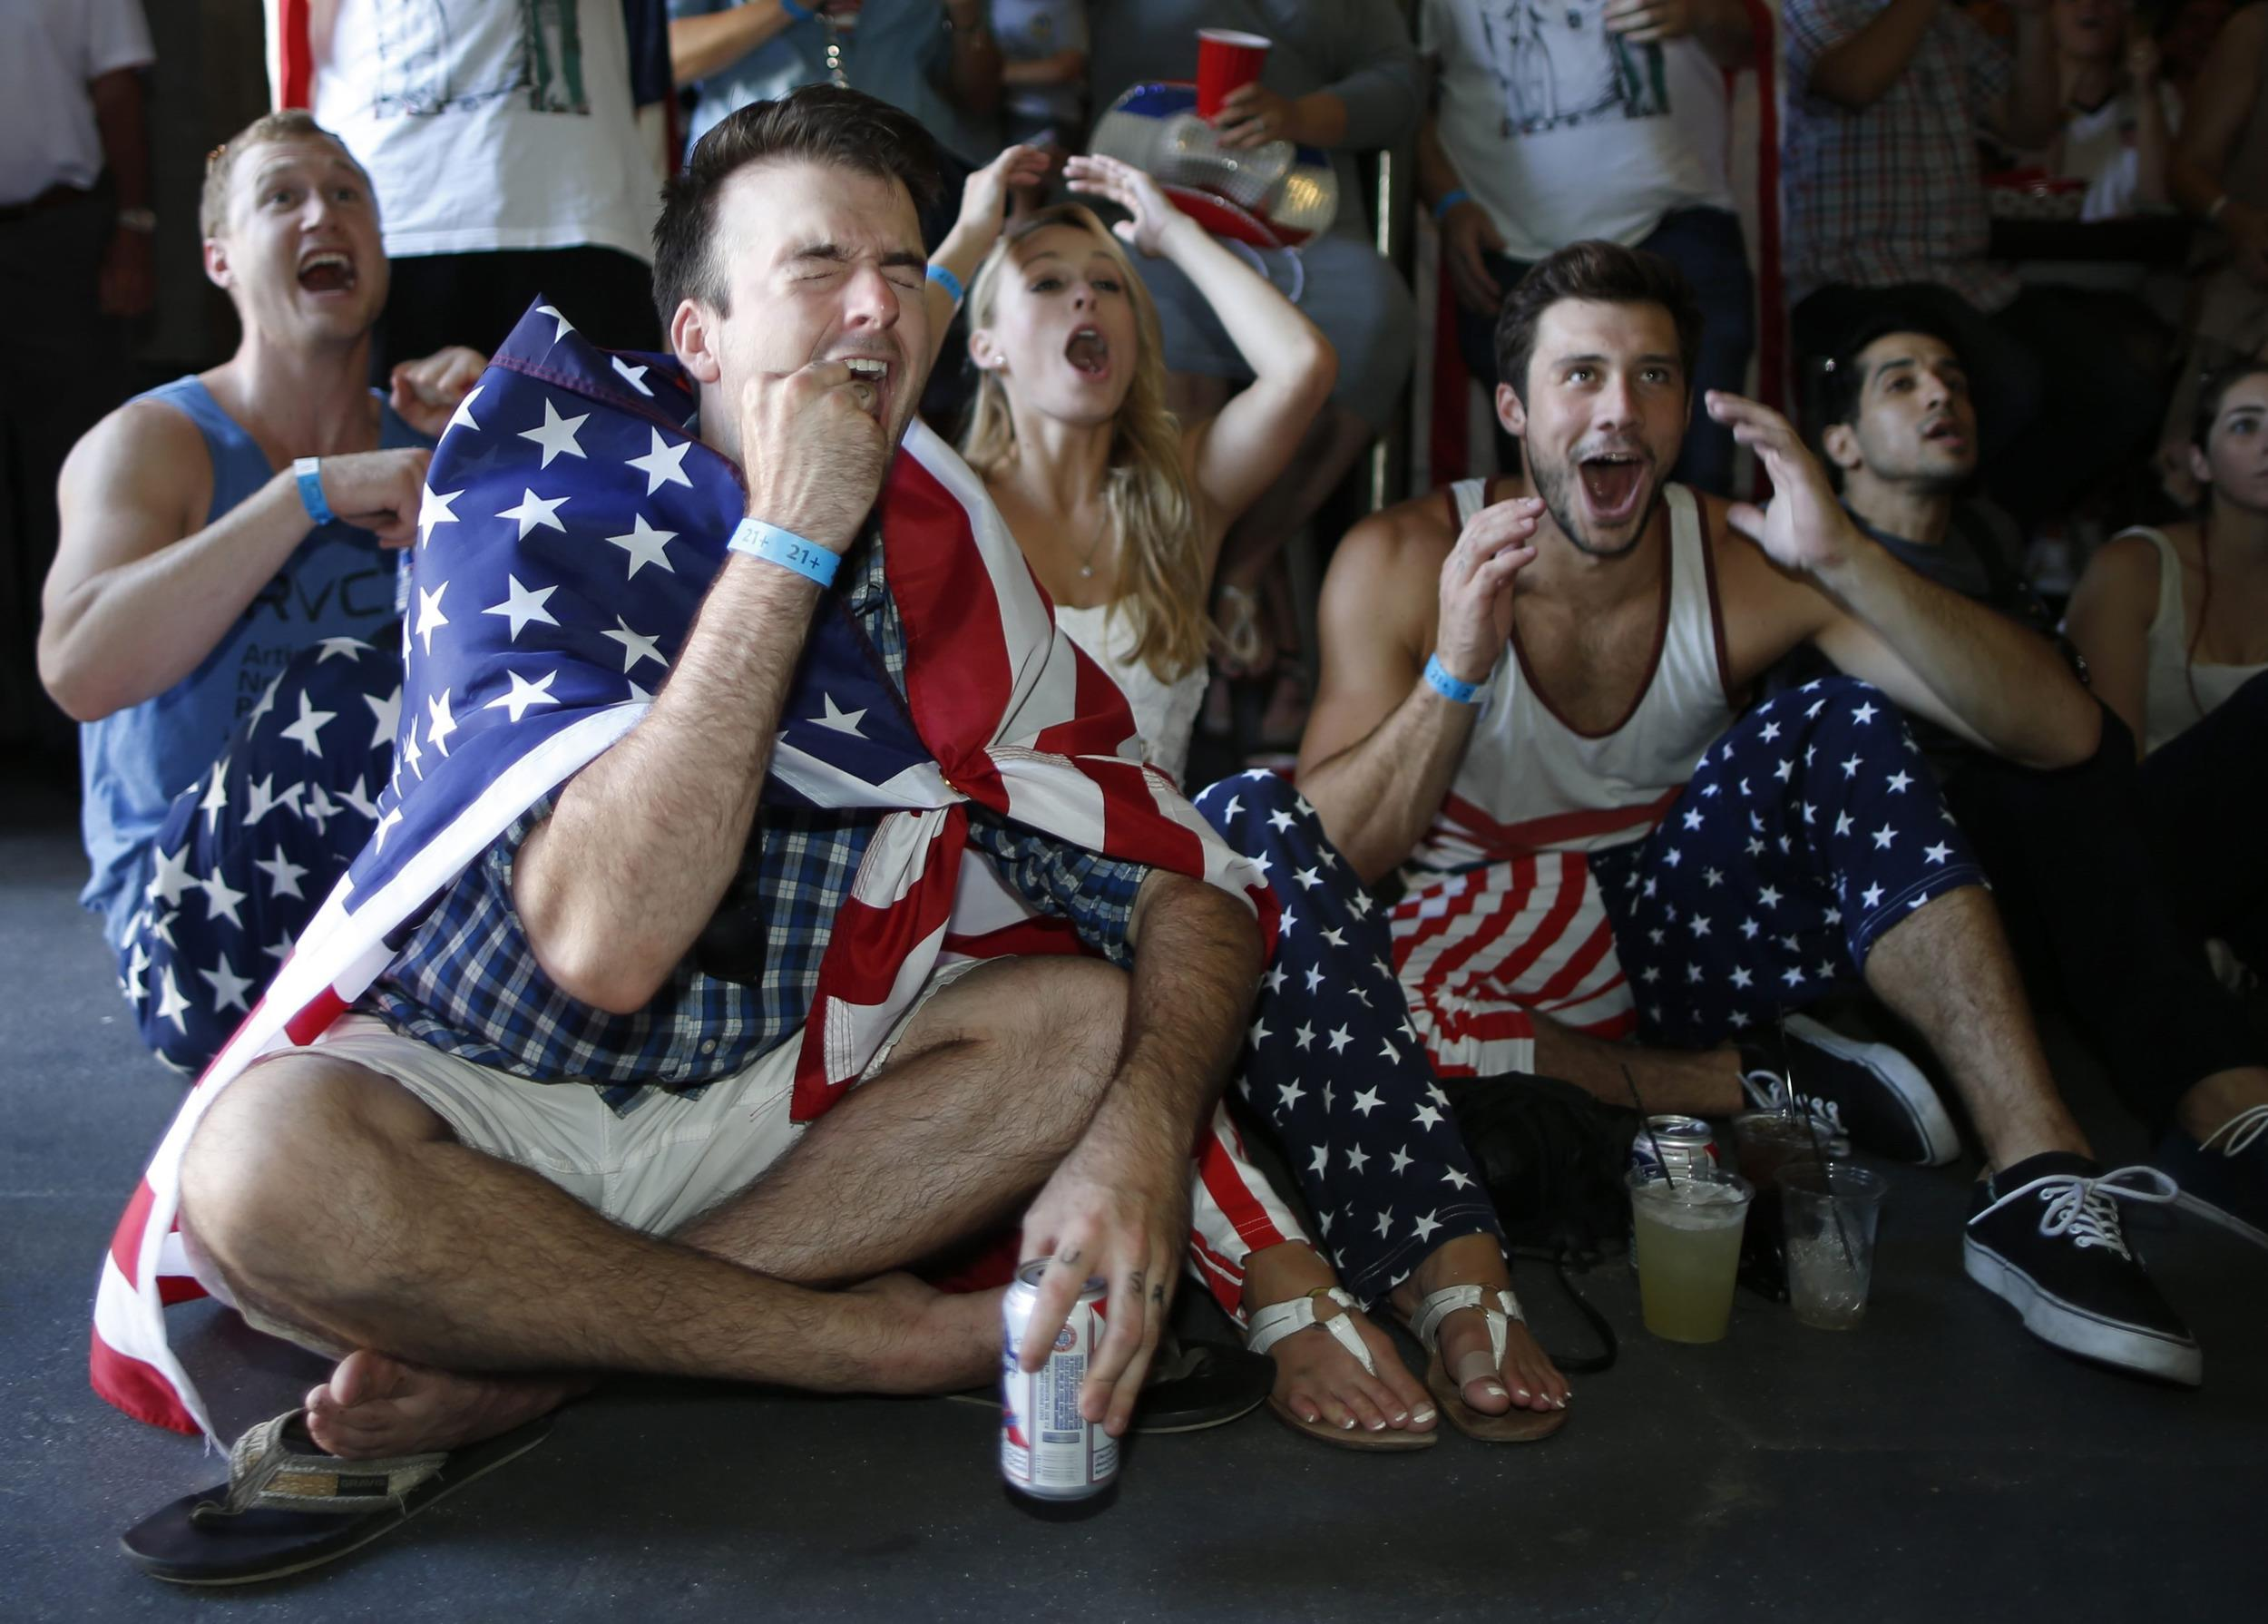 Image: USA fans react during the 2014 World Cup Group G soccer match between Portugal and the U.S. at a viewing party in Los Angeles